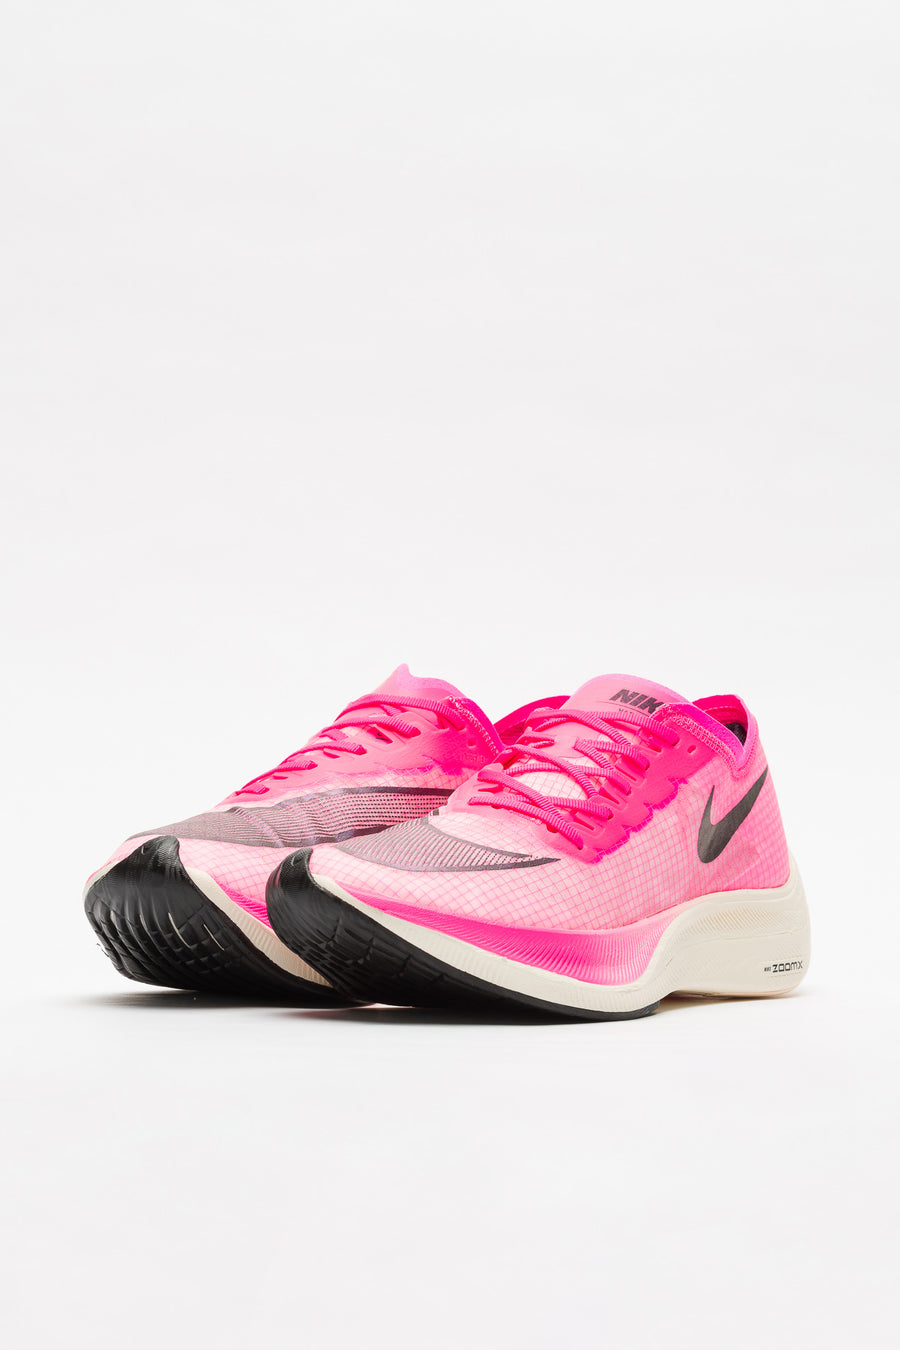 Nike ZoomX Vaporfly Next% in Pink Blast - Notre